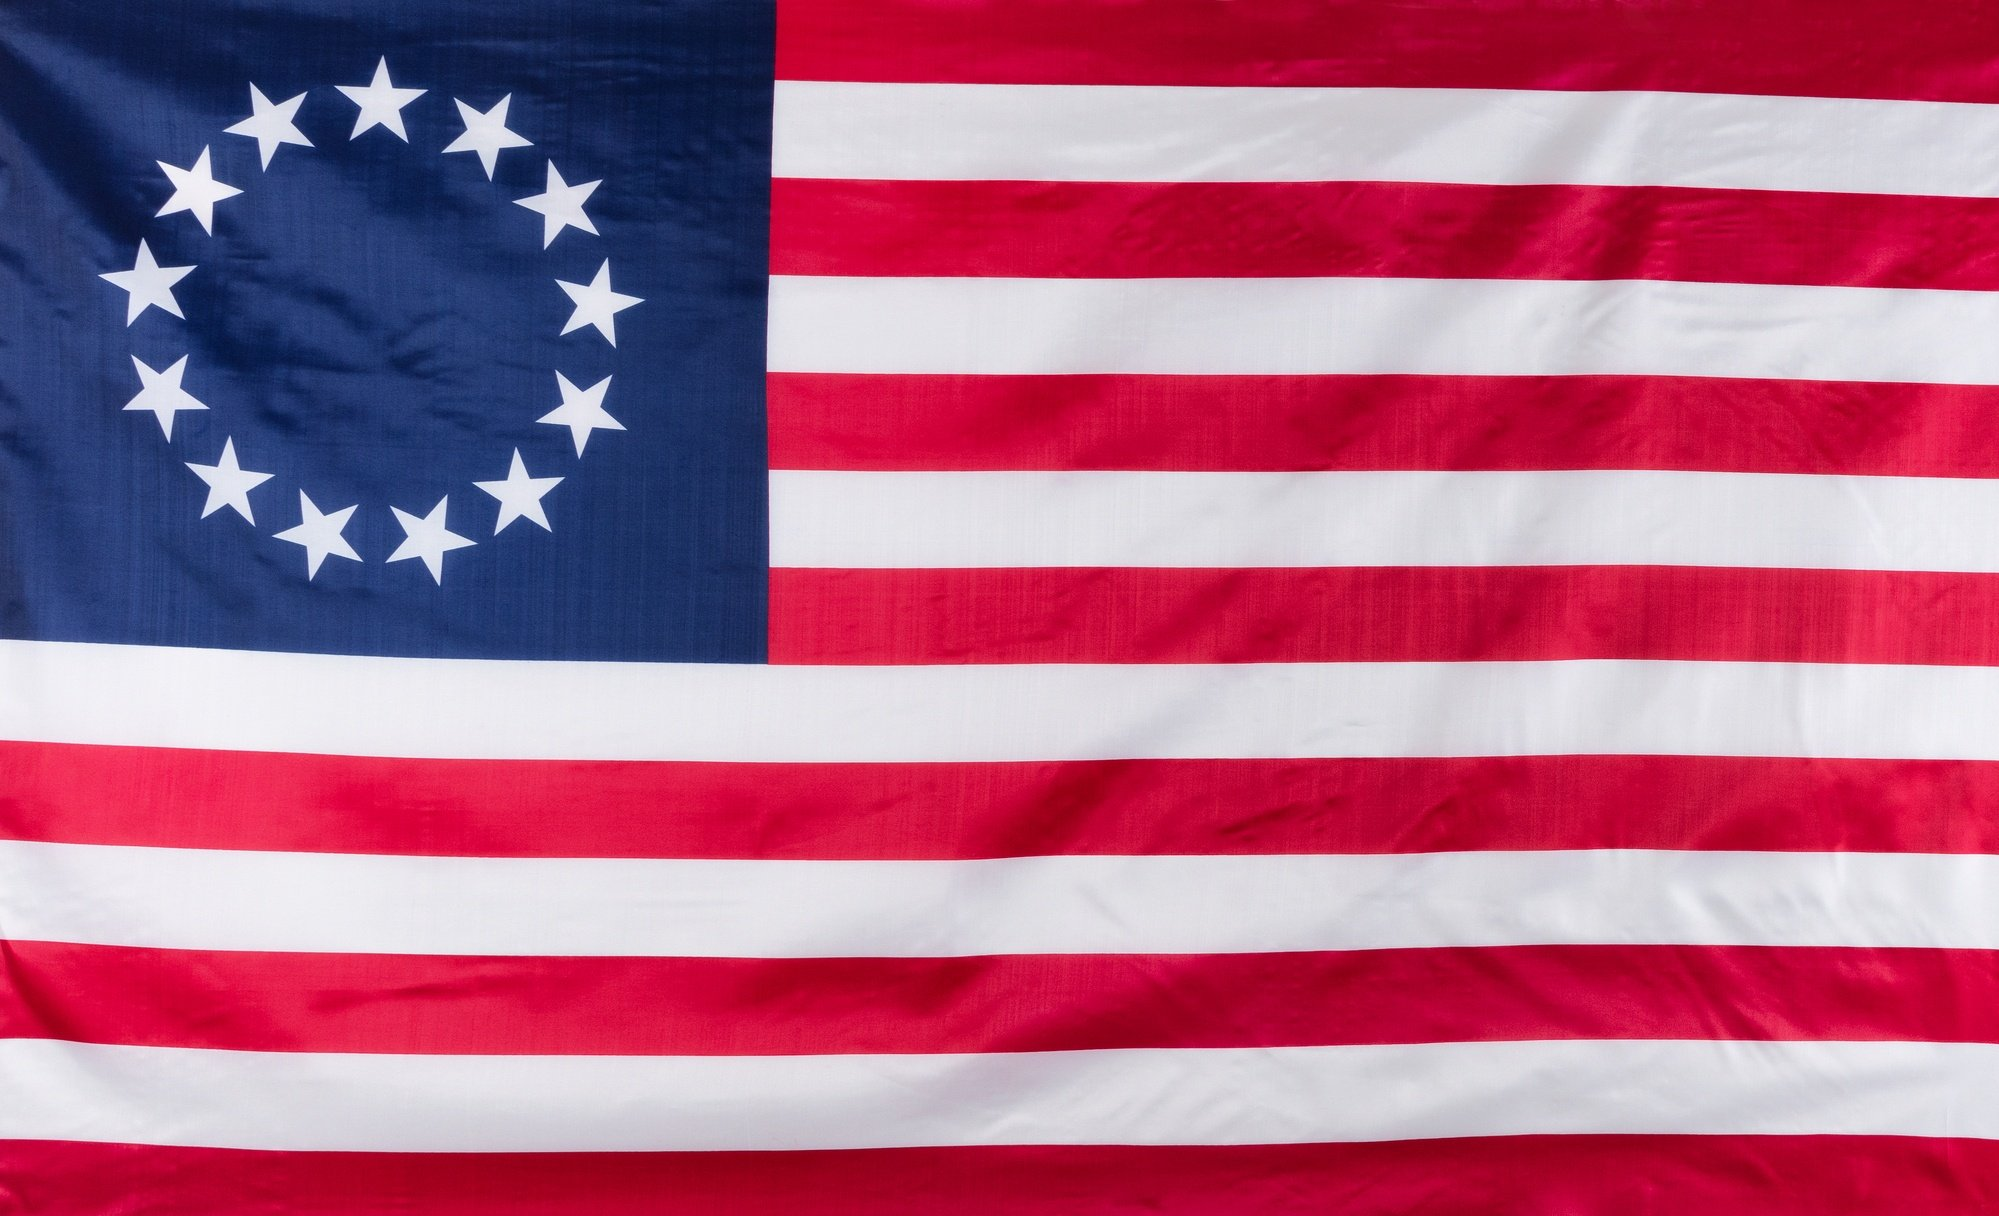 Flag of the original Thirteen Colonies